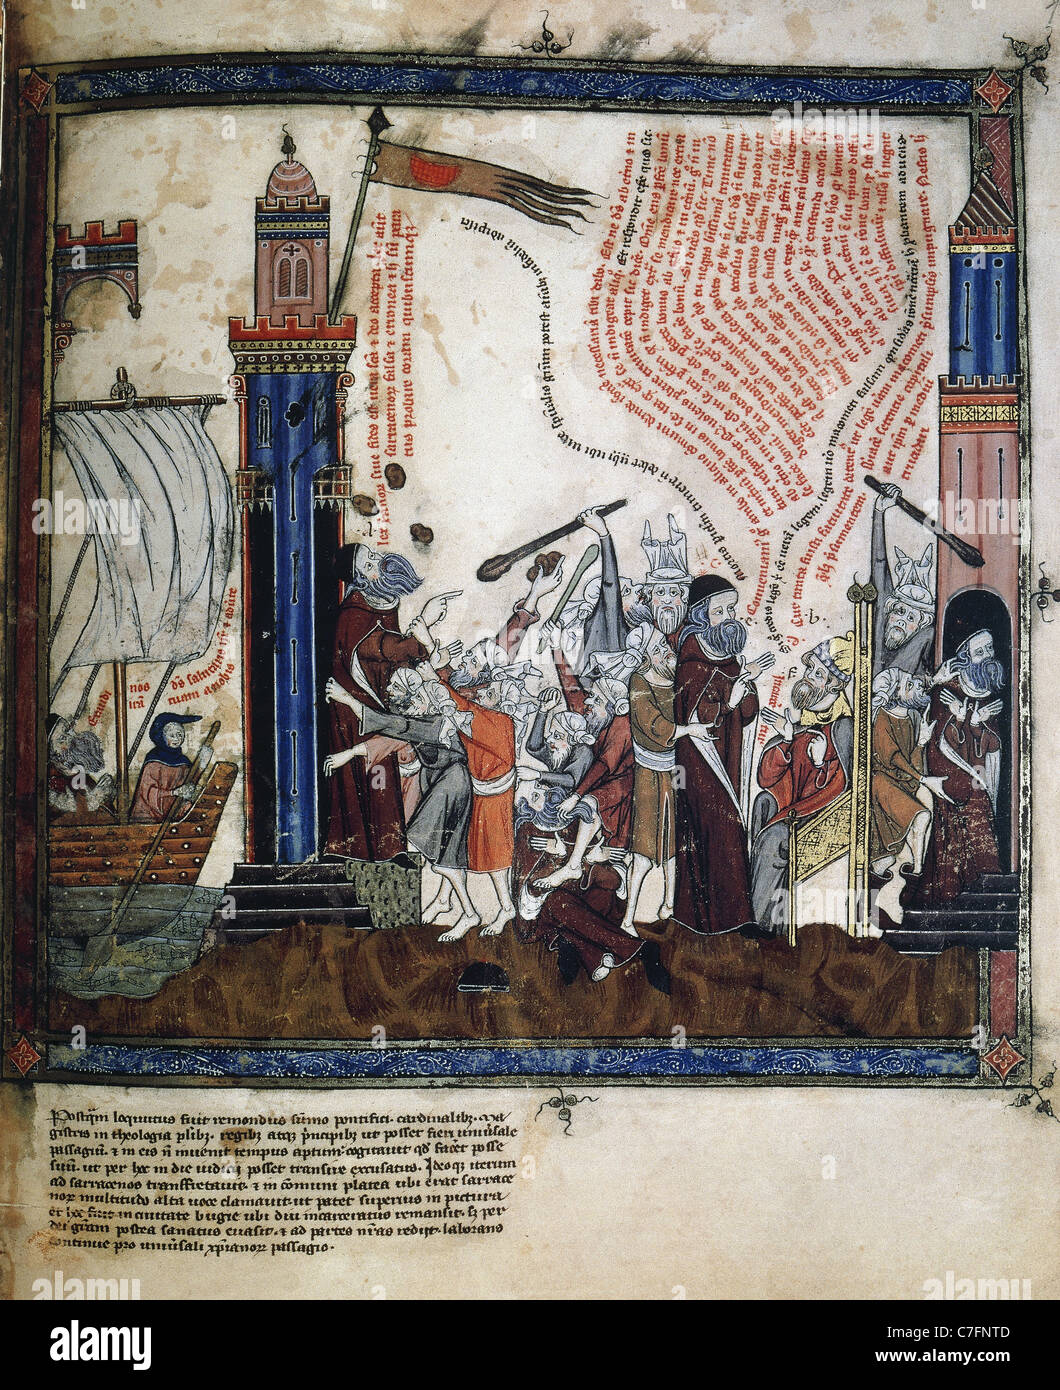 Ramon Llull (1235-1316). Ramon Llull trip to Bejaia as a missionary, his stoning and confinement in prison. Stock Photo